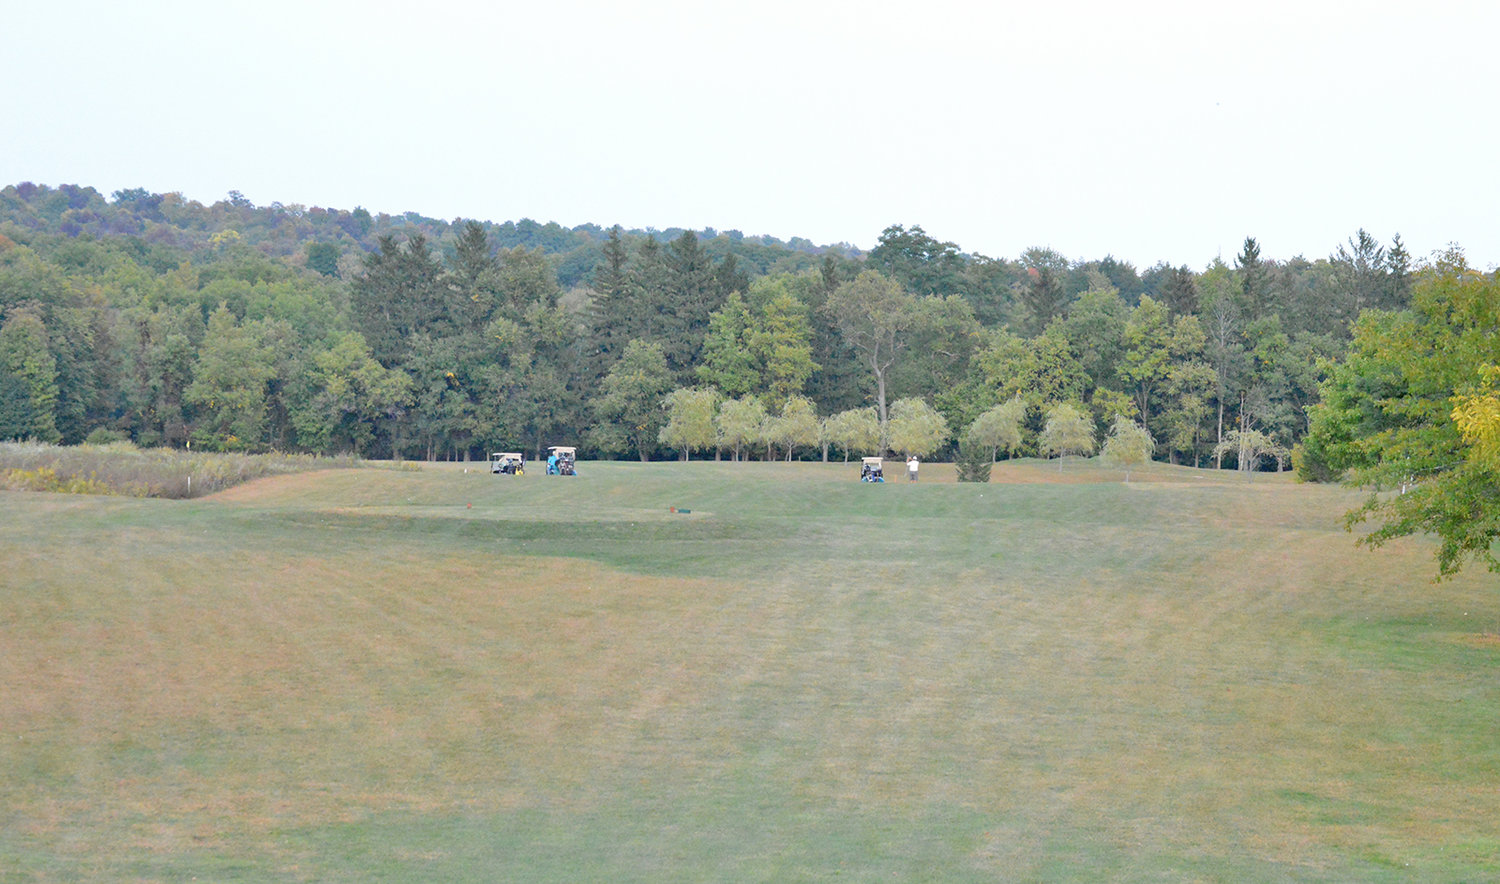 SPREAD ACROSS THE FAIRWAY — Carts line the 17th fairway at MV Golf and Event Center on Thursday afternoon. This hole is the third and final par 5 of the course.